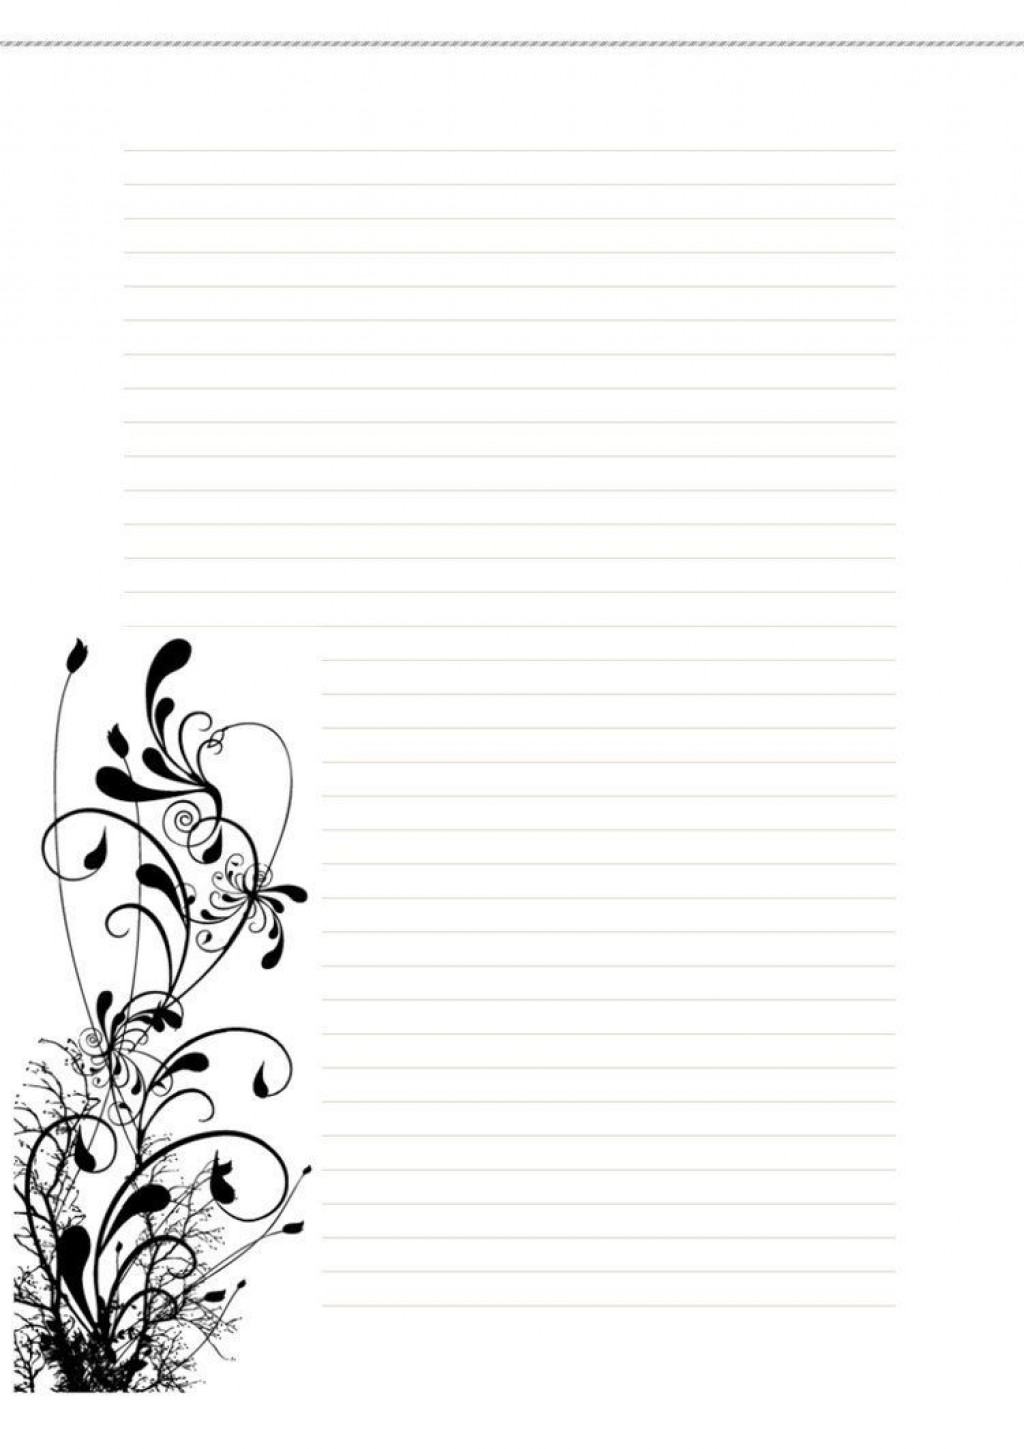 006 Incredible Free Printable Stationery Paper Template Image  TemplatesLarge